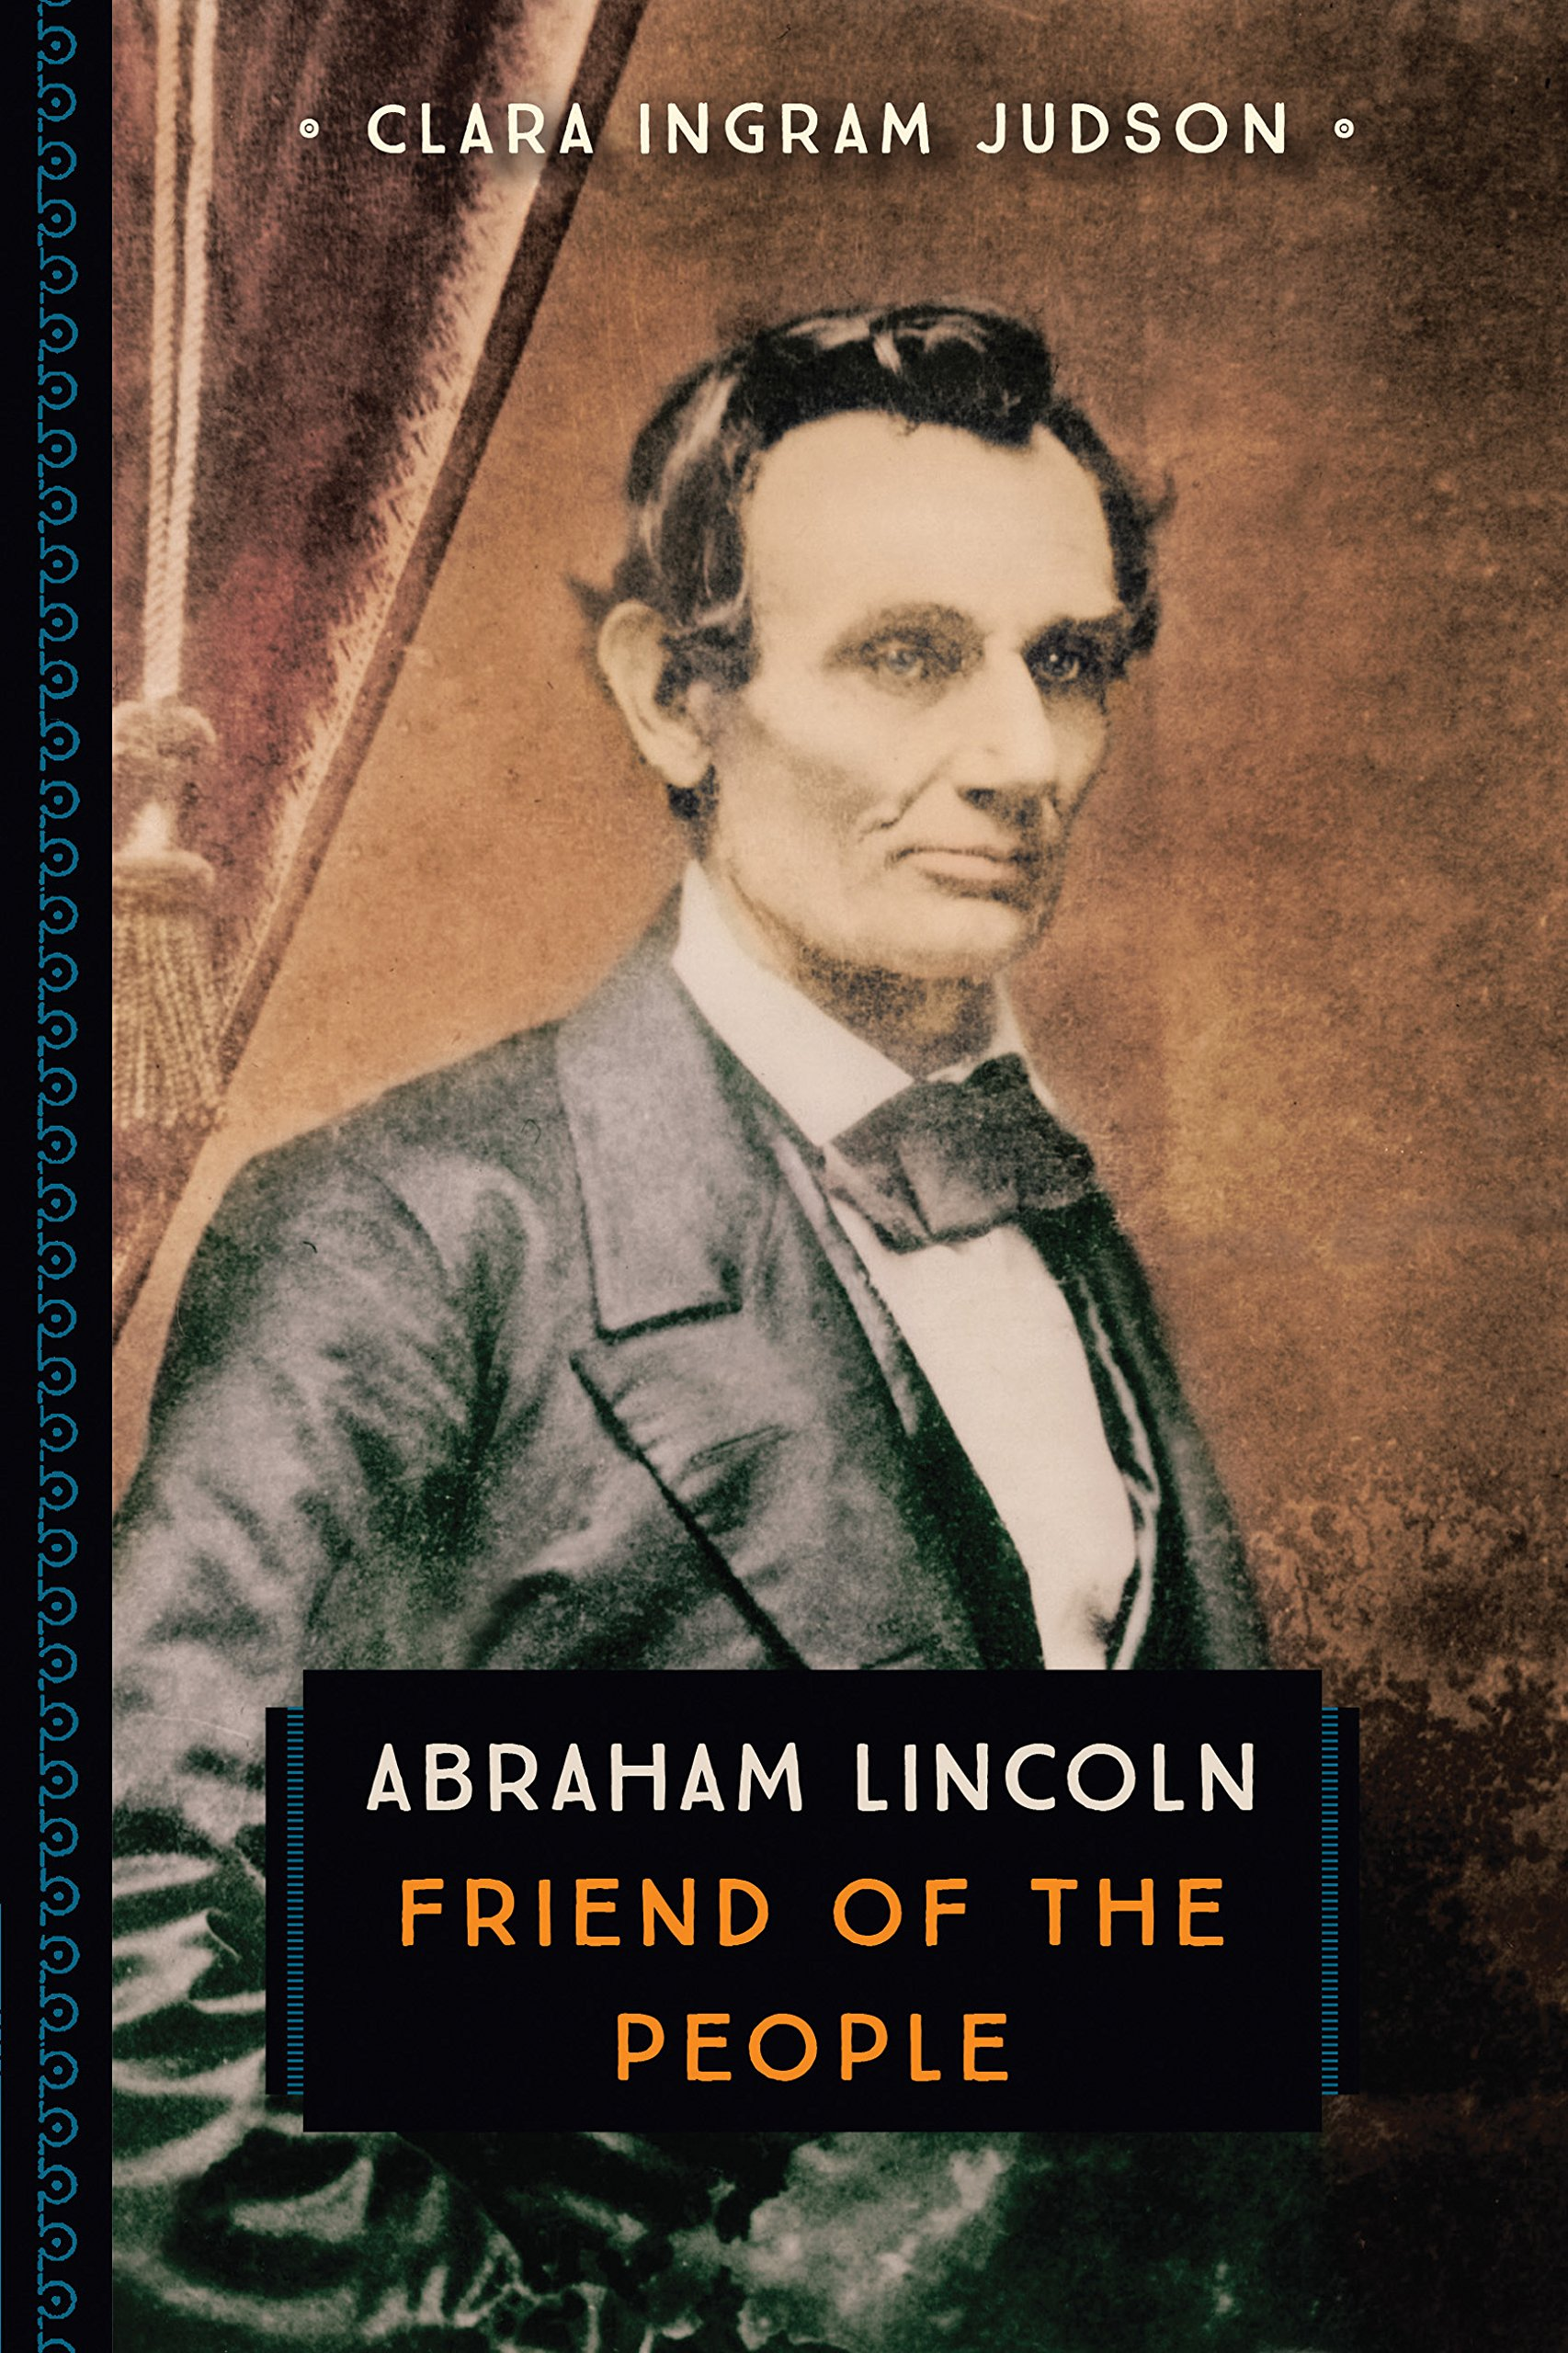 Abraham Lincoln: Friend of the People (833)